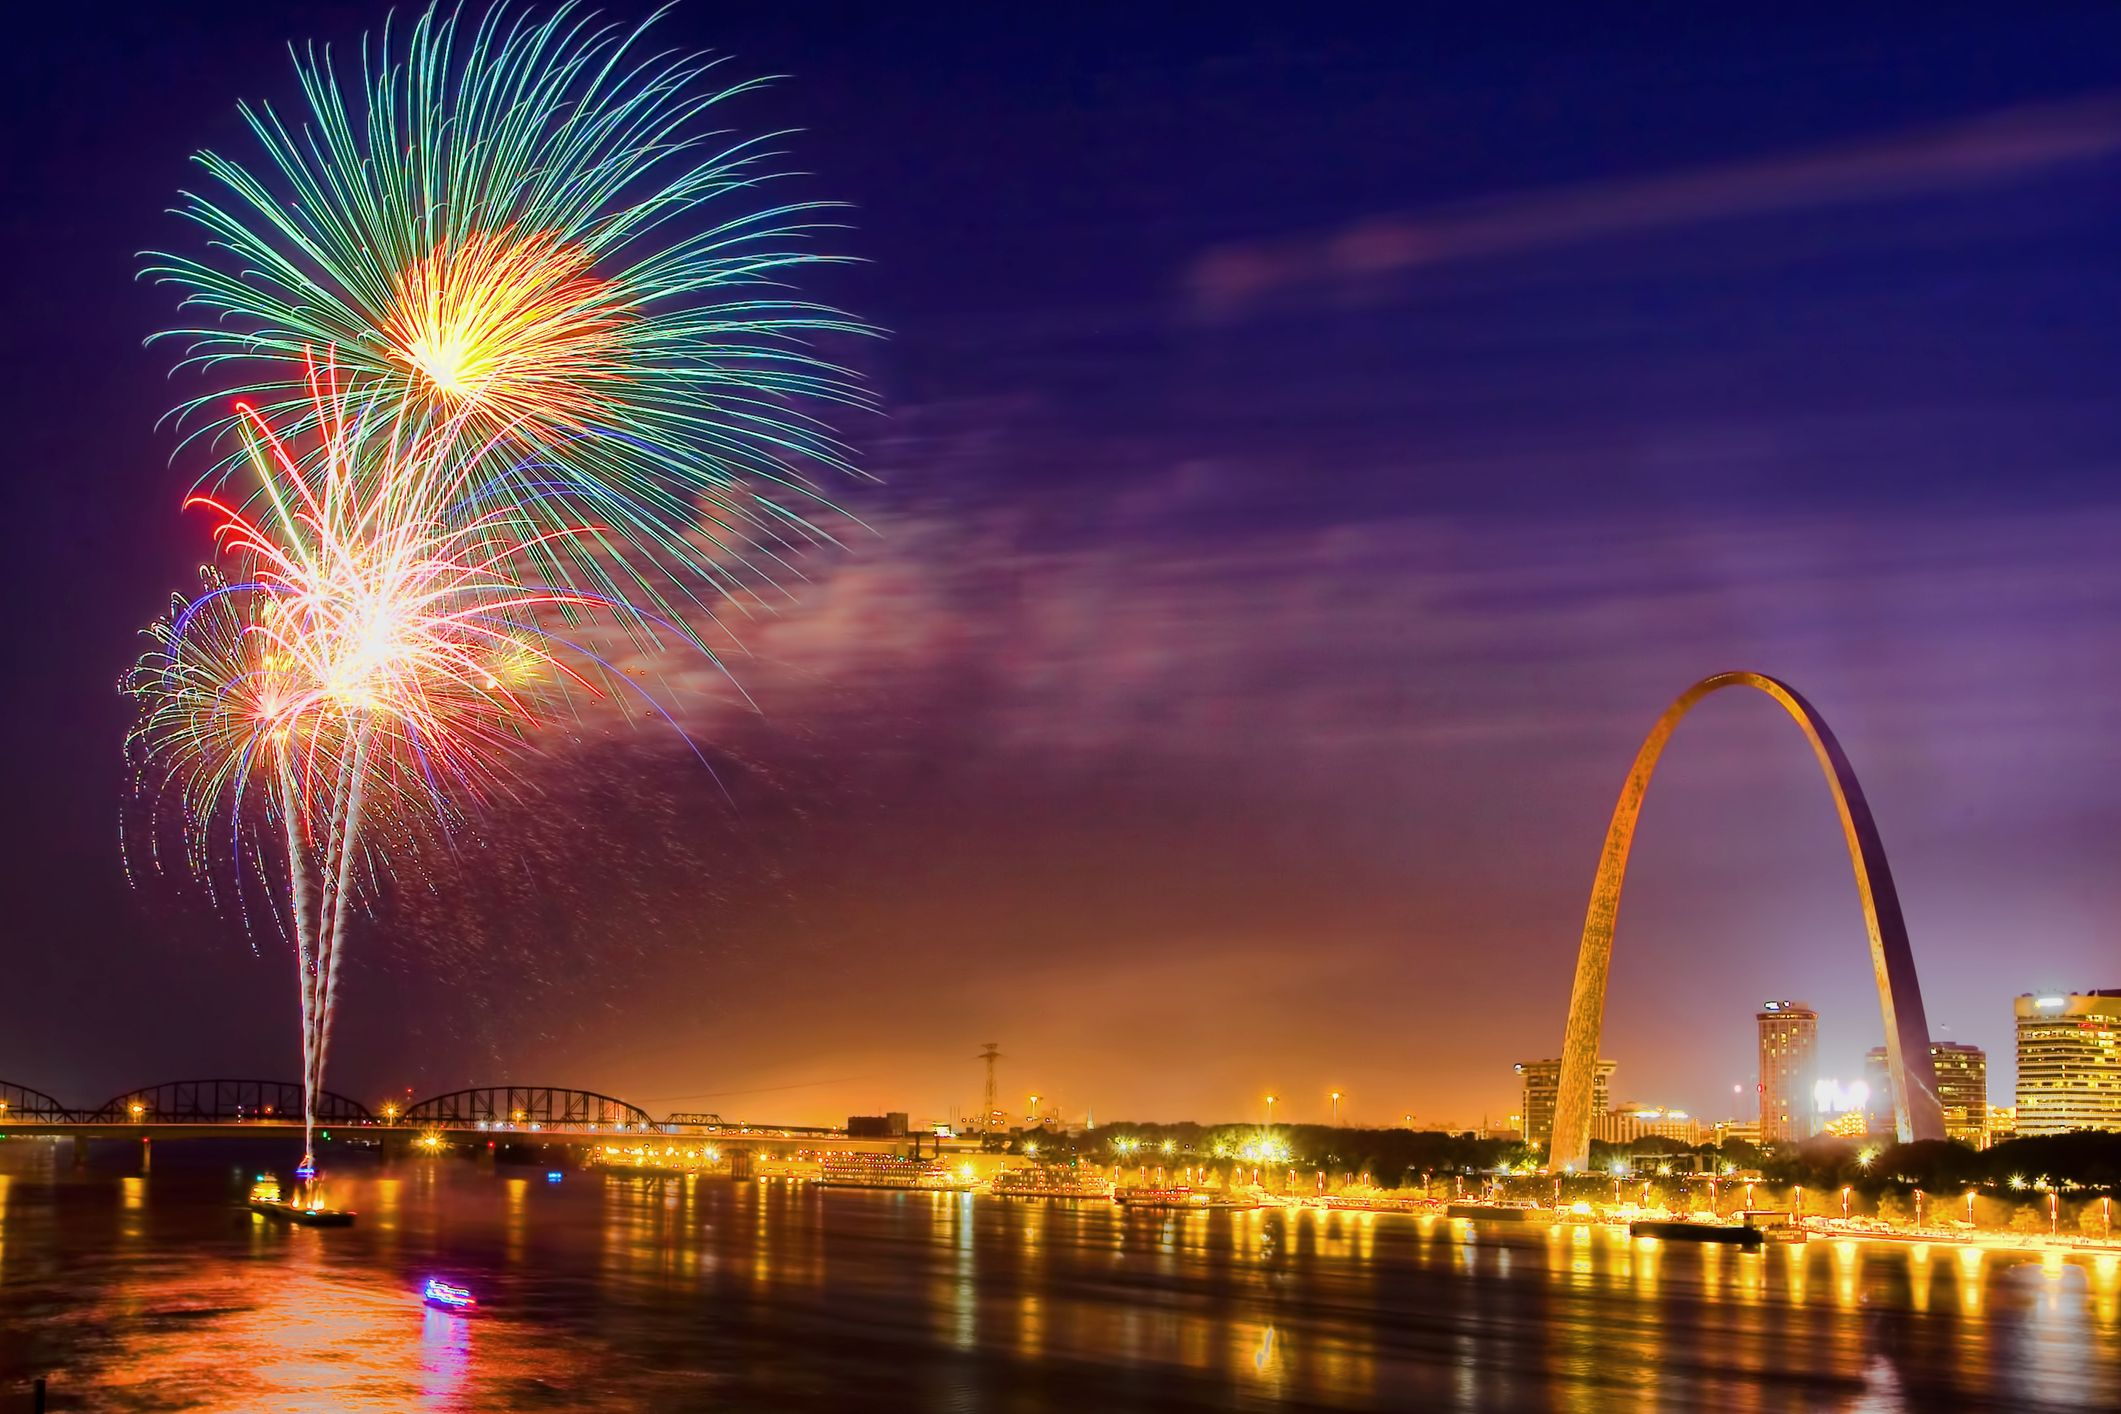 Stay on top of all the best events happening in york county. Where to Watch Fireworks Near Me - 20 Best Places to Watch ...